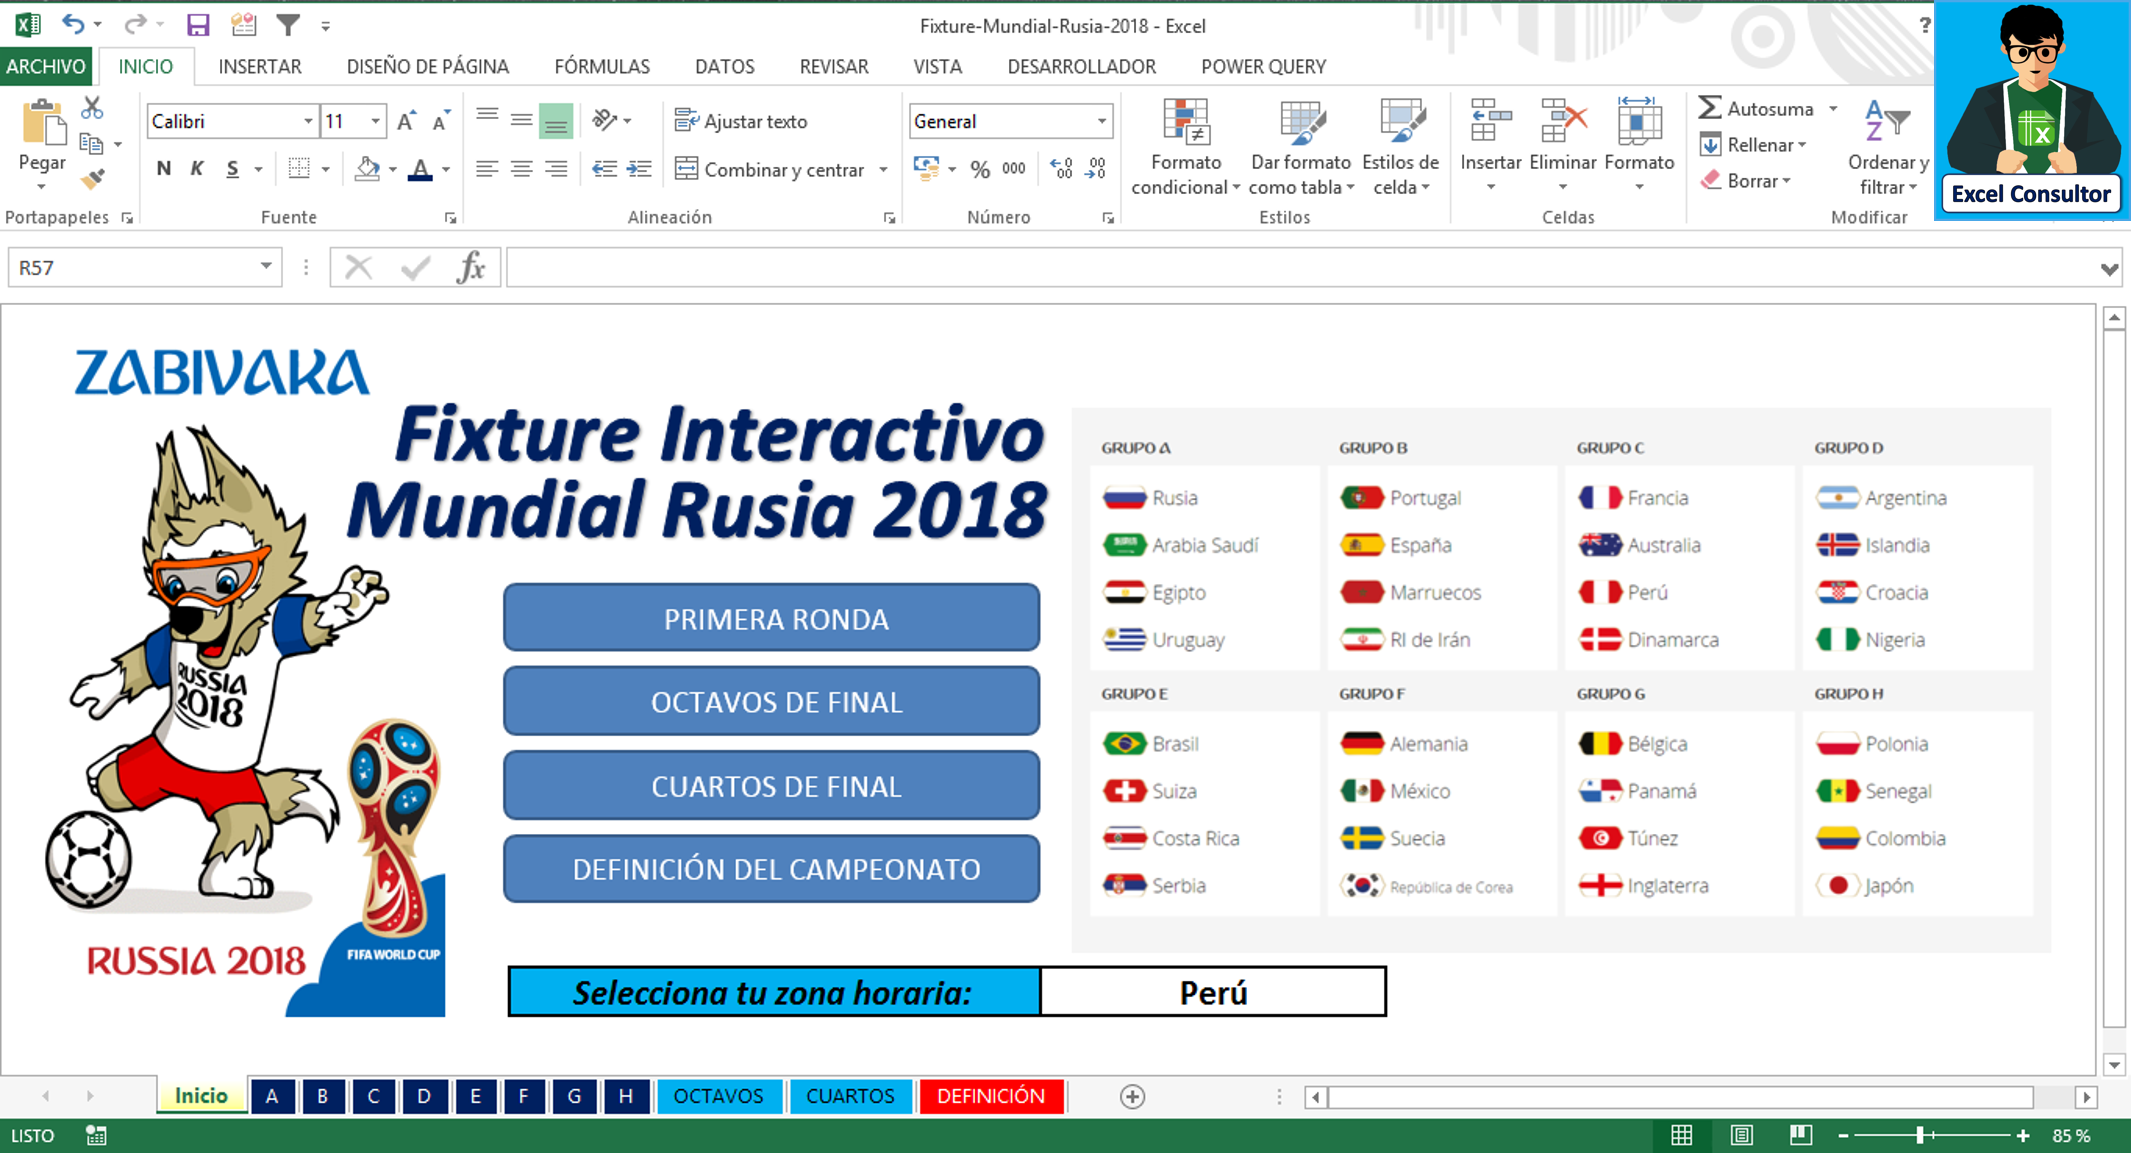 Excel Consultor (my proyect)+Fixure Mundial 2018(Excel)